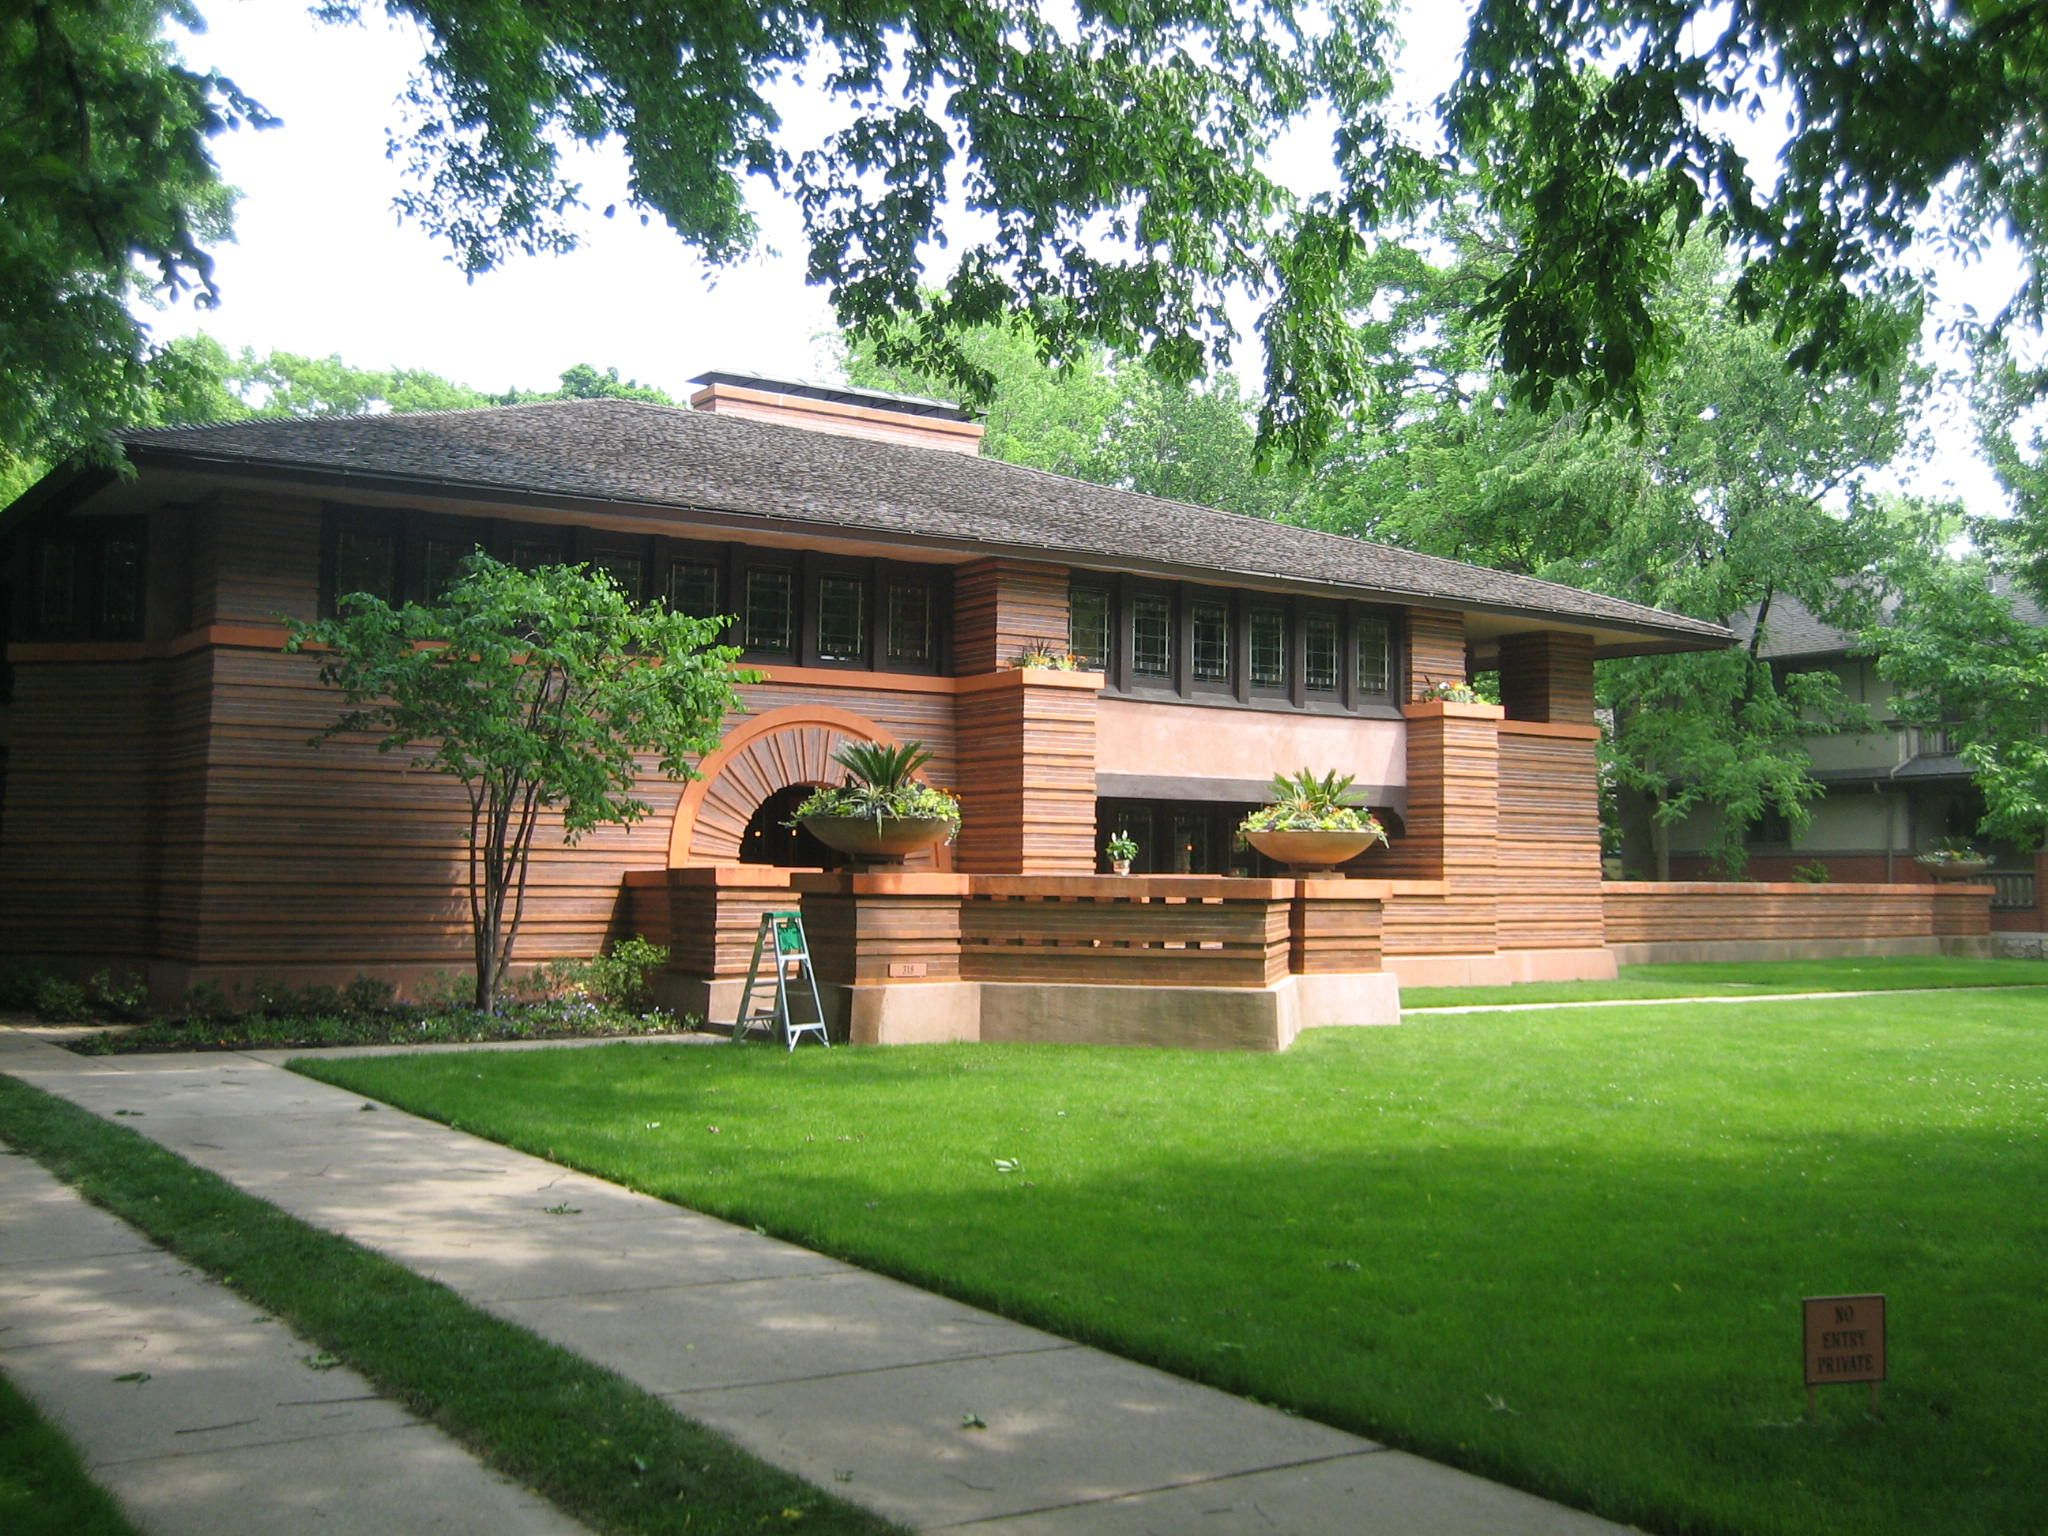 Frank Lloyd Wright Arthur Heurtley House 1902 Oak Park Illinois